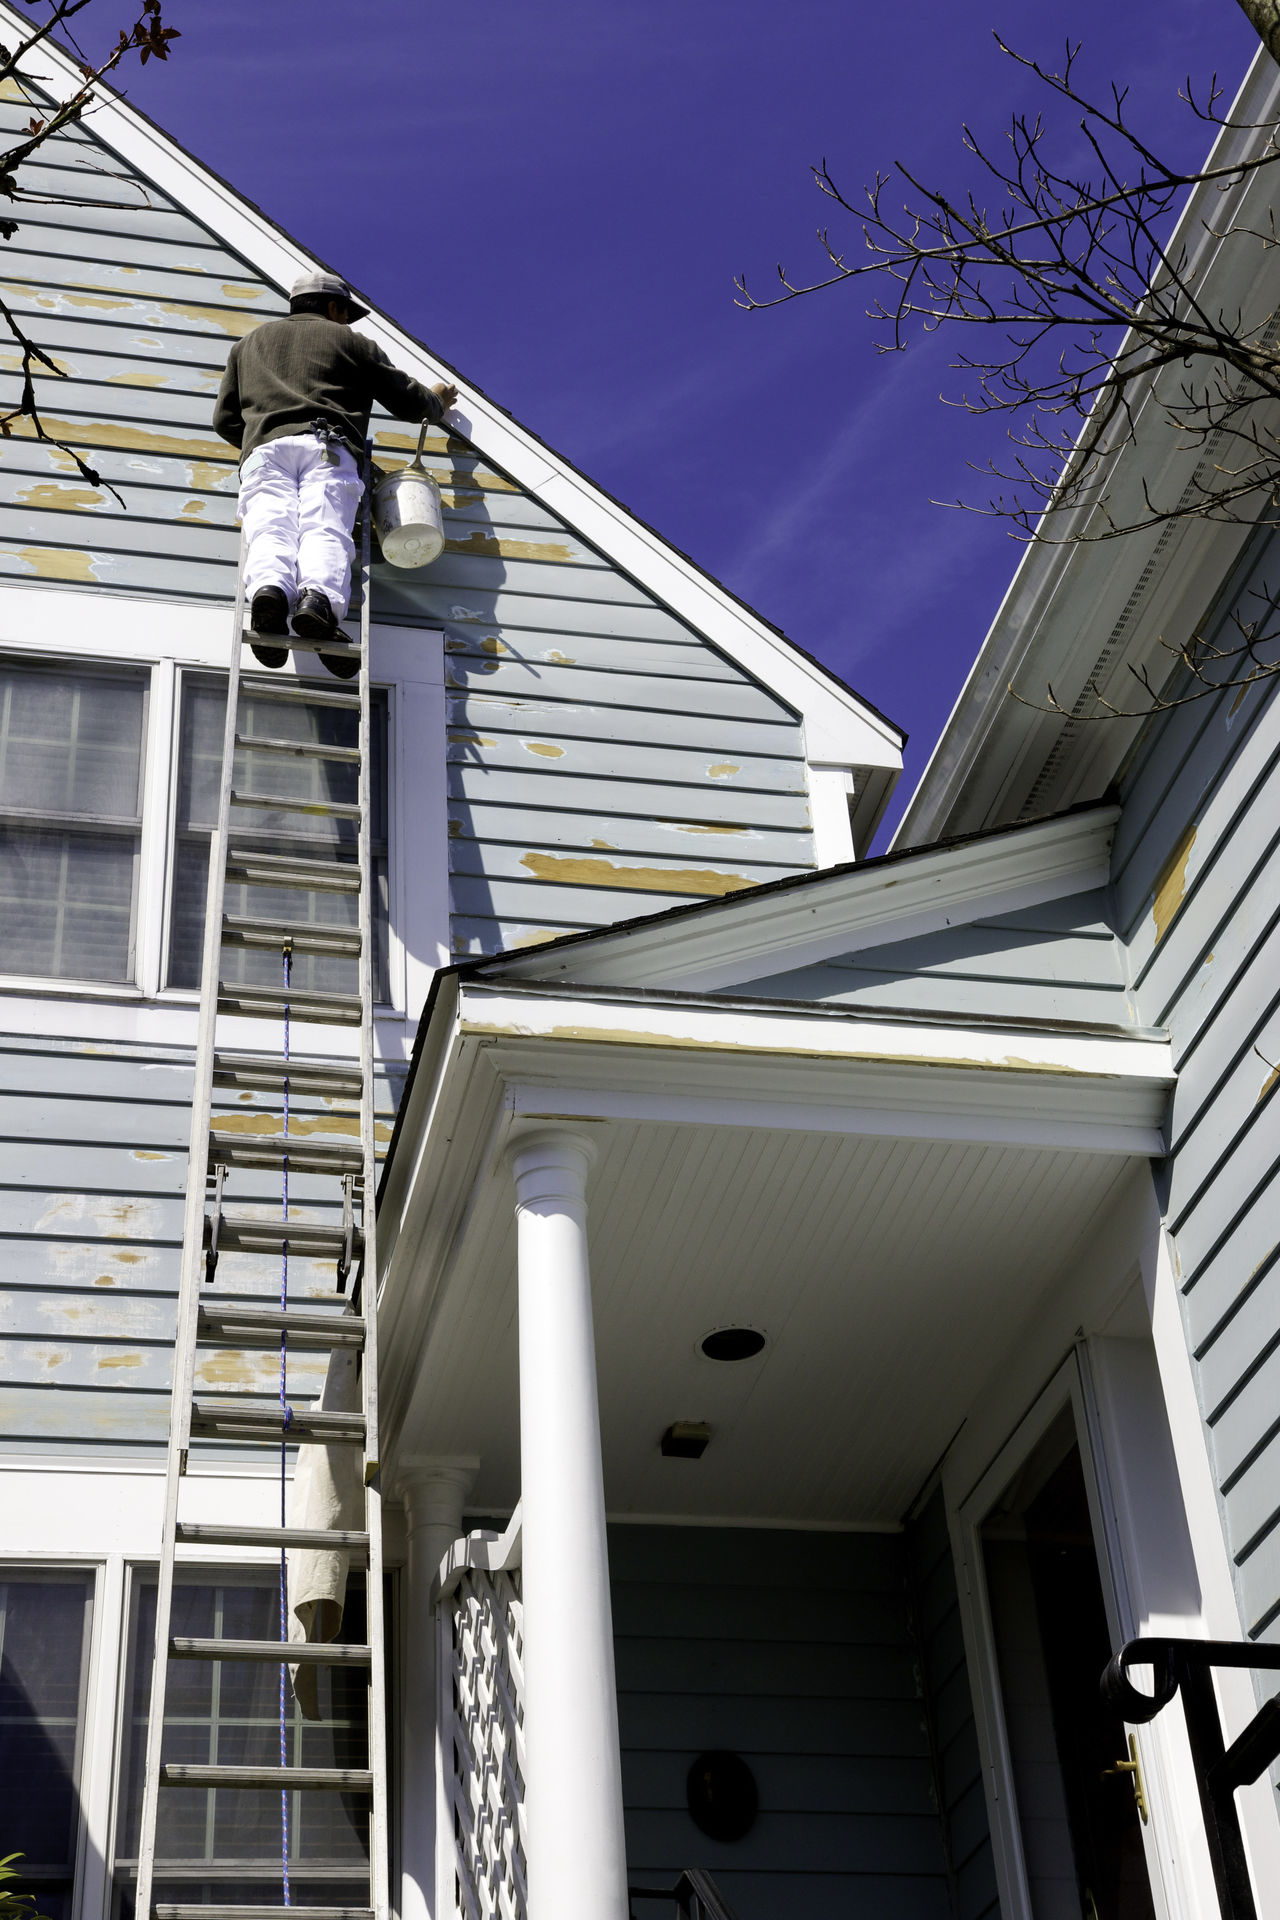 Painting contractor on ladder works on siding of a nice home or condo in white plains, ny on a beautiful day. Blue Sky Condo Contractor Hanging Out Home Home Exterior Homeimprovement House Ladder Pain Painter Siding Trim Trim Work Wood